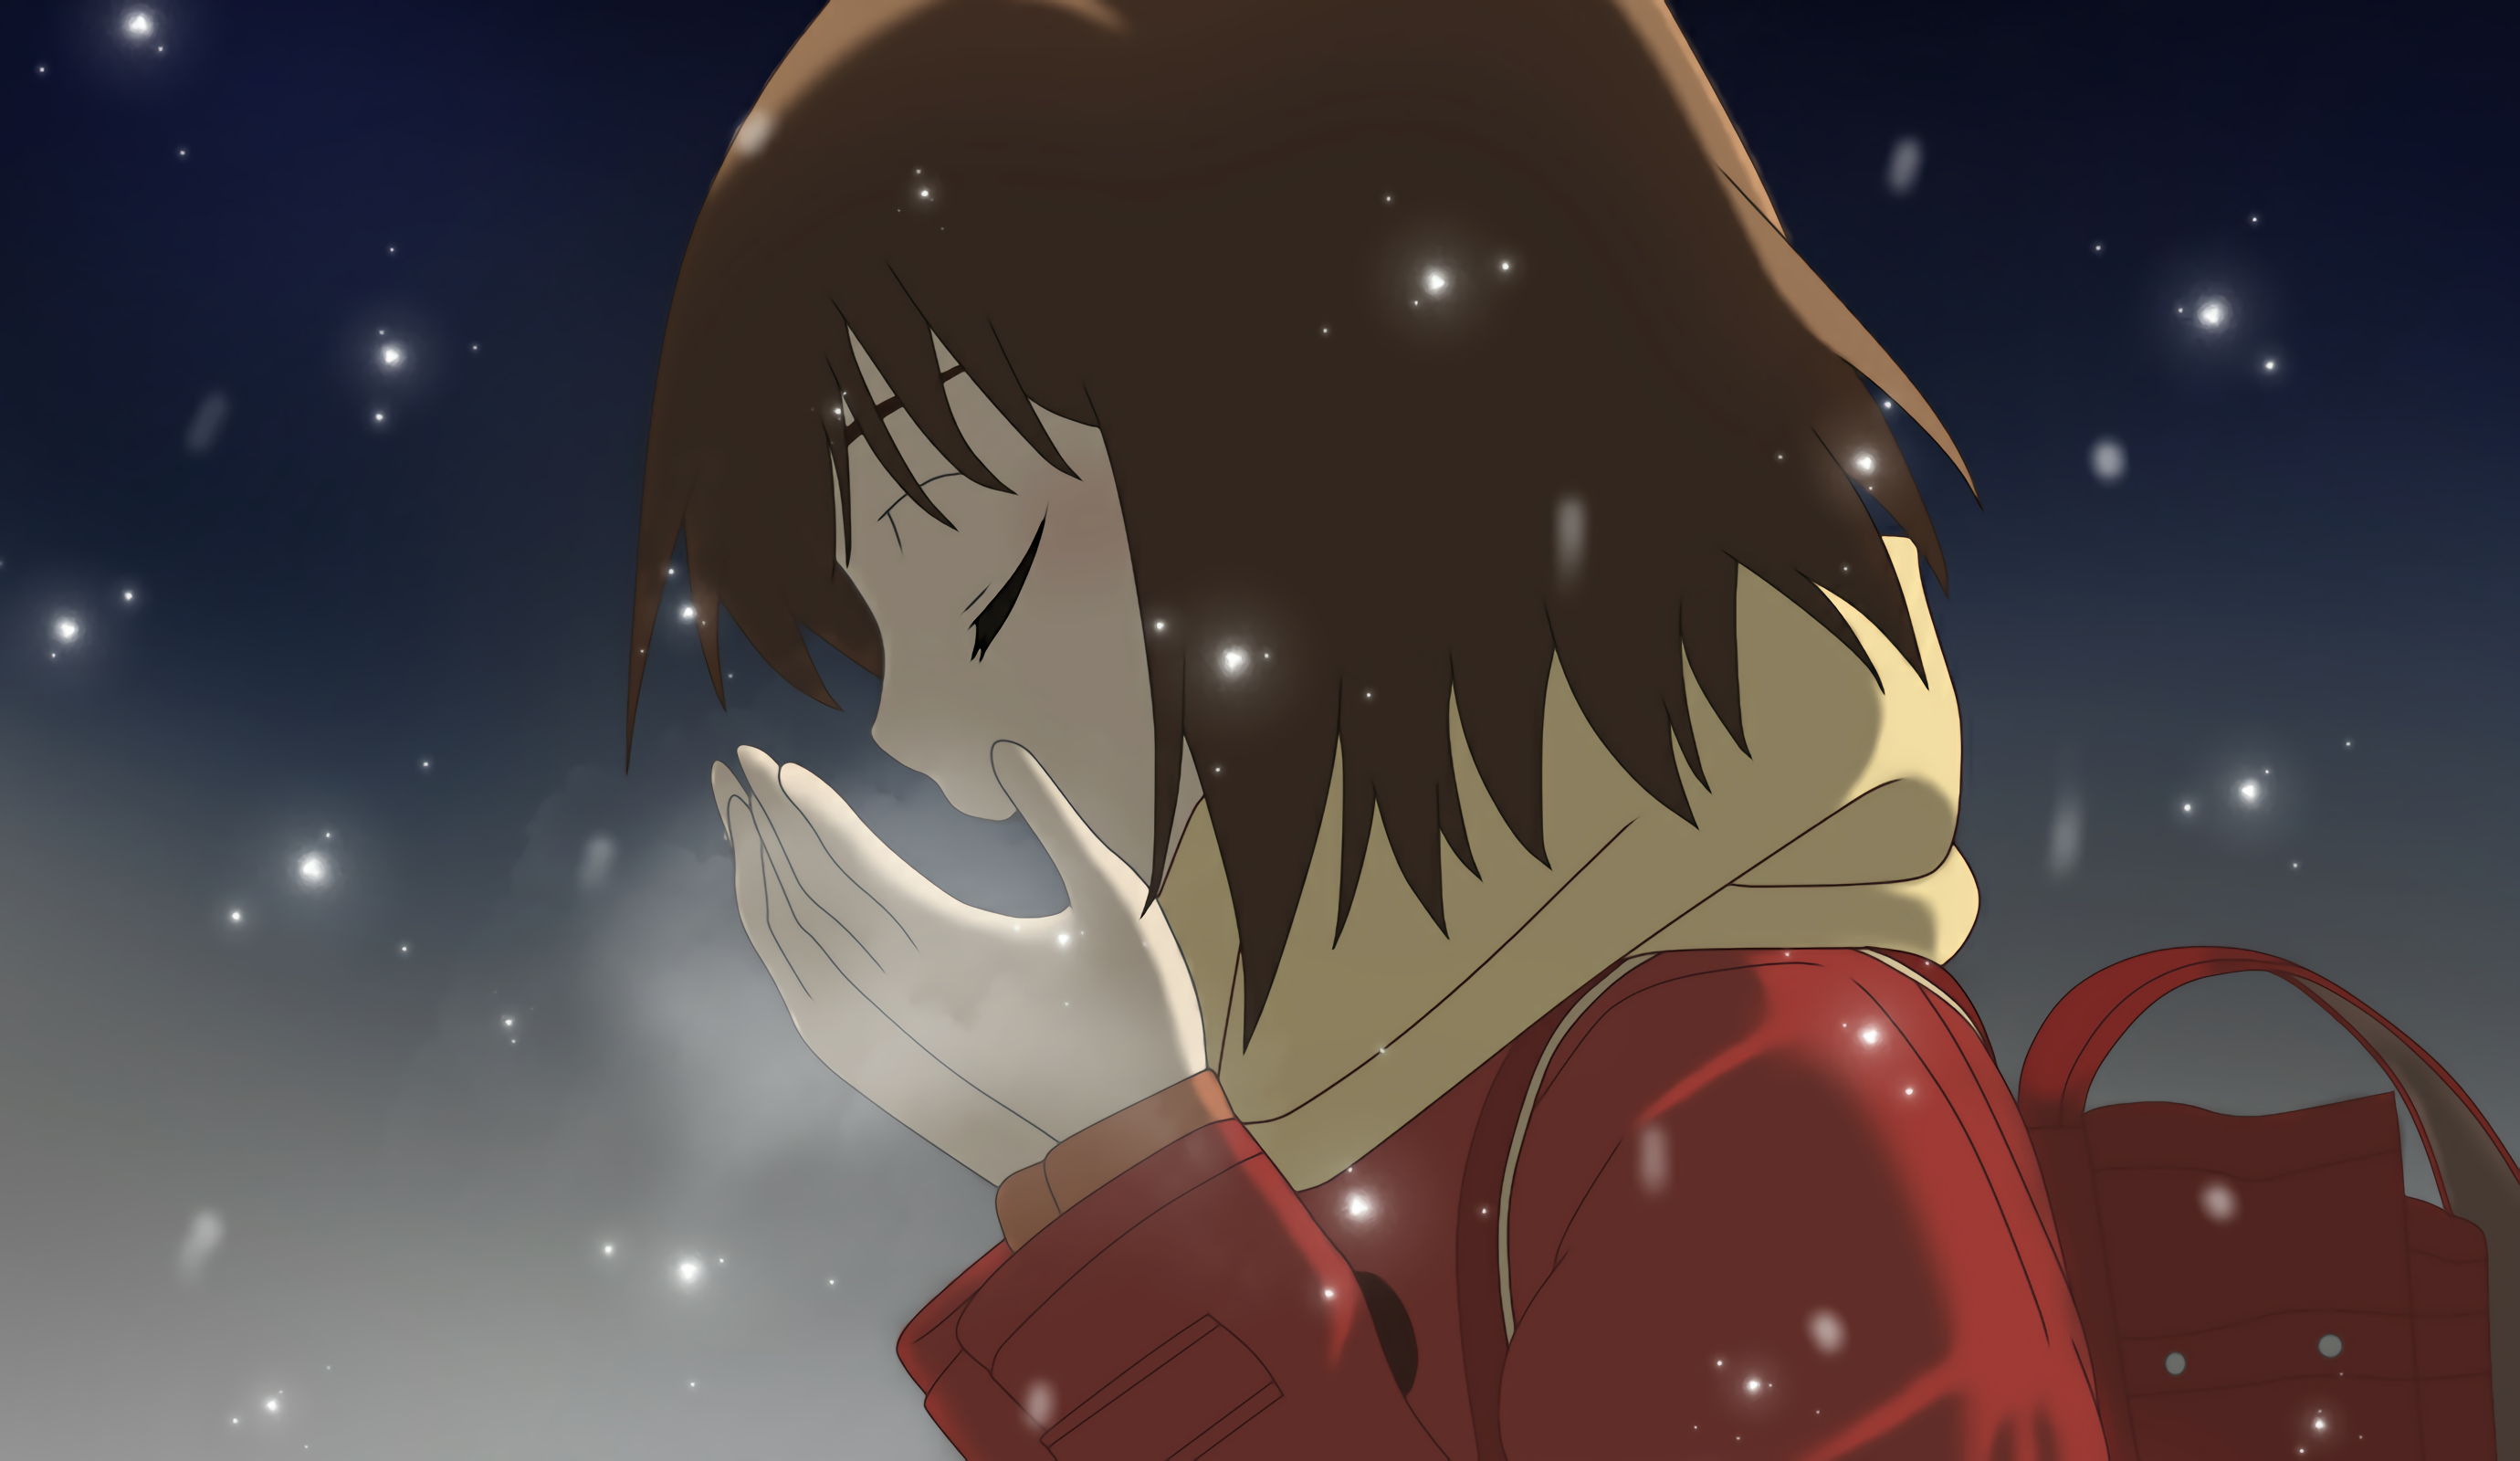 63 Erased Hd Wallpapers Background Images Wallpaper Abyss